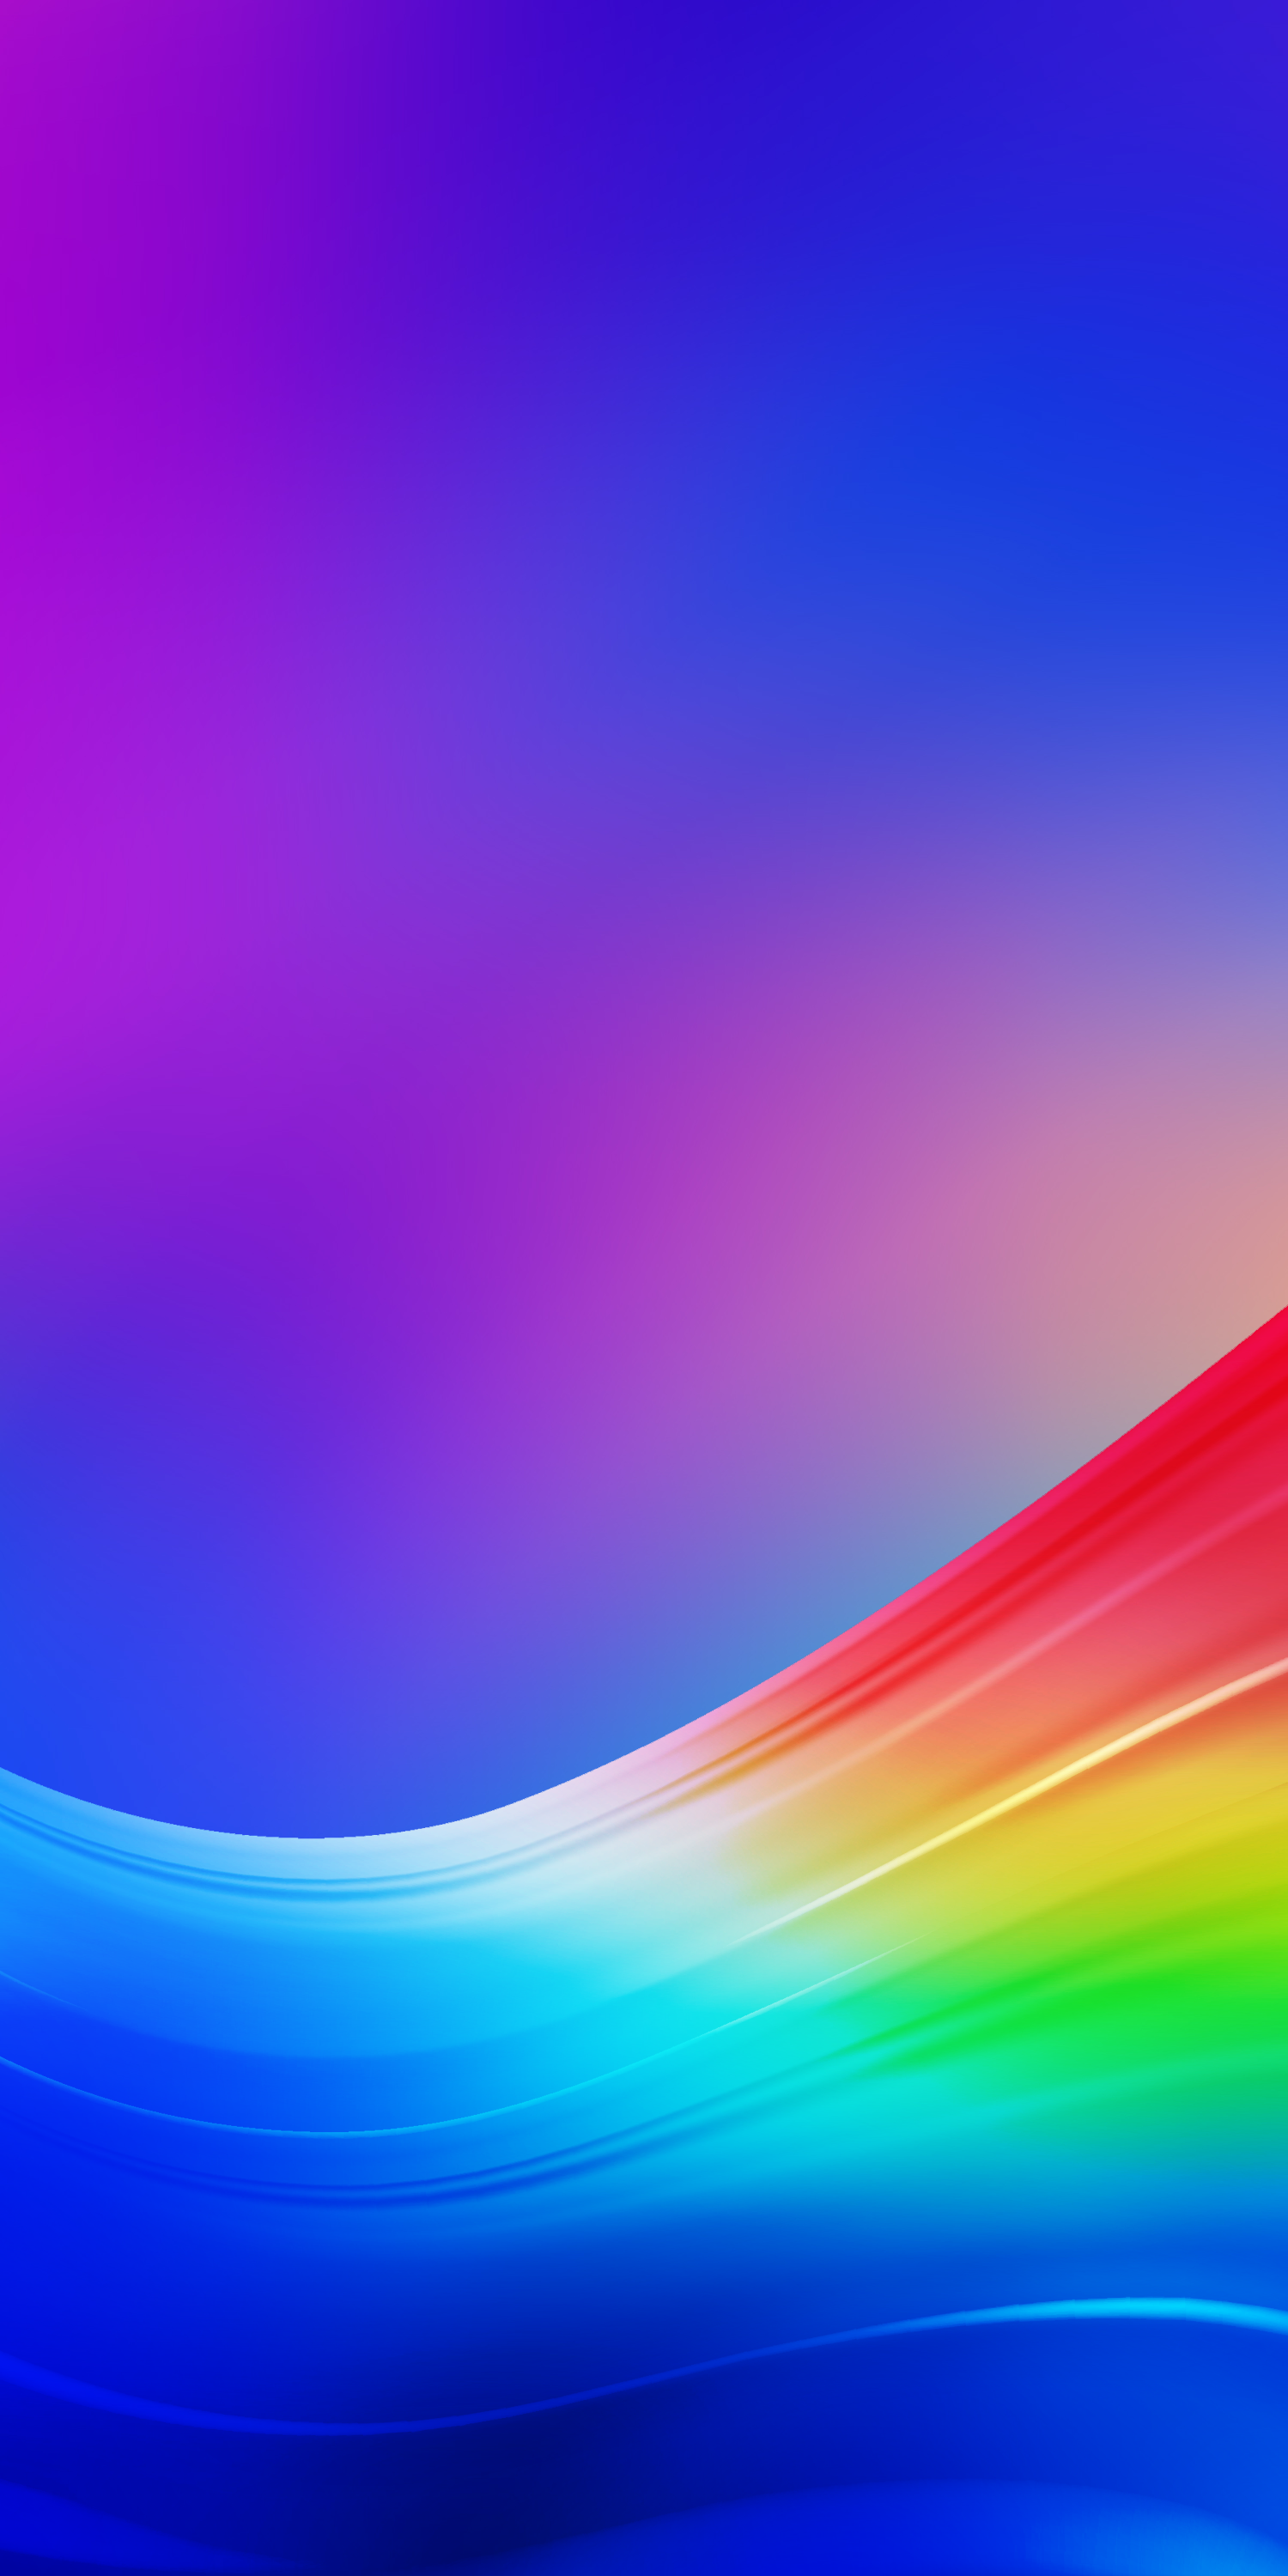 Get Good Abstract Phone Wallpaper HD This Month by iwalls.vip